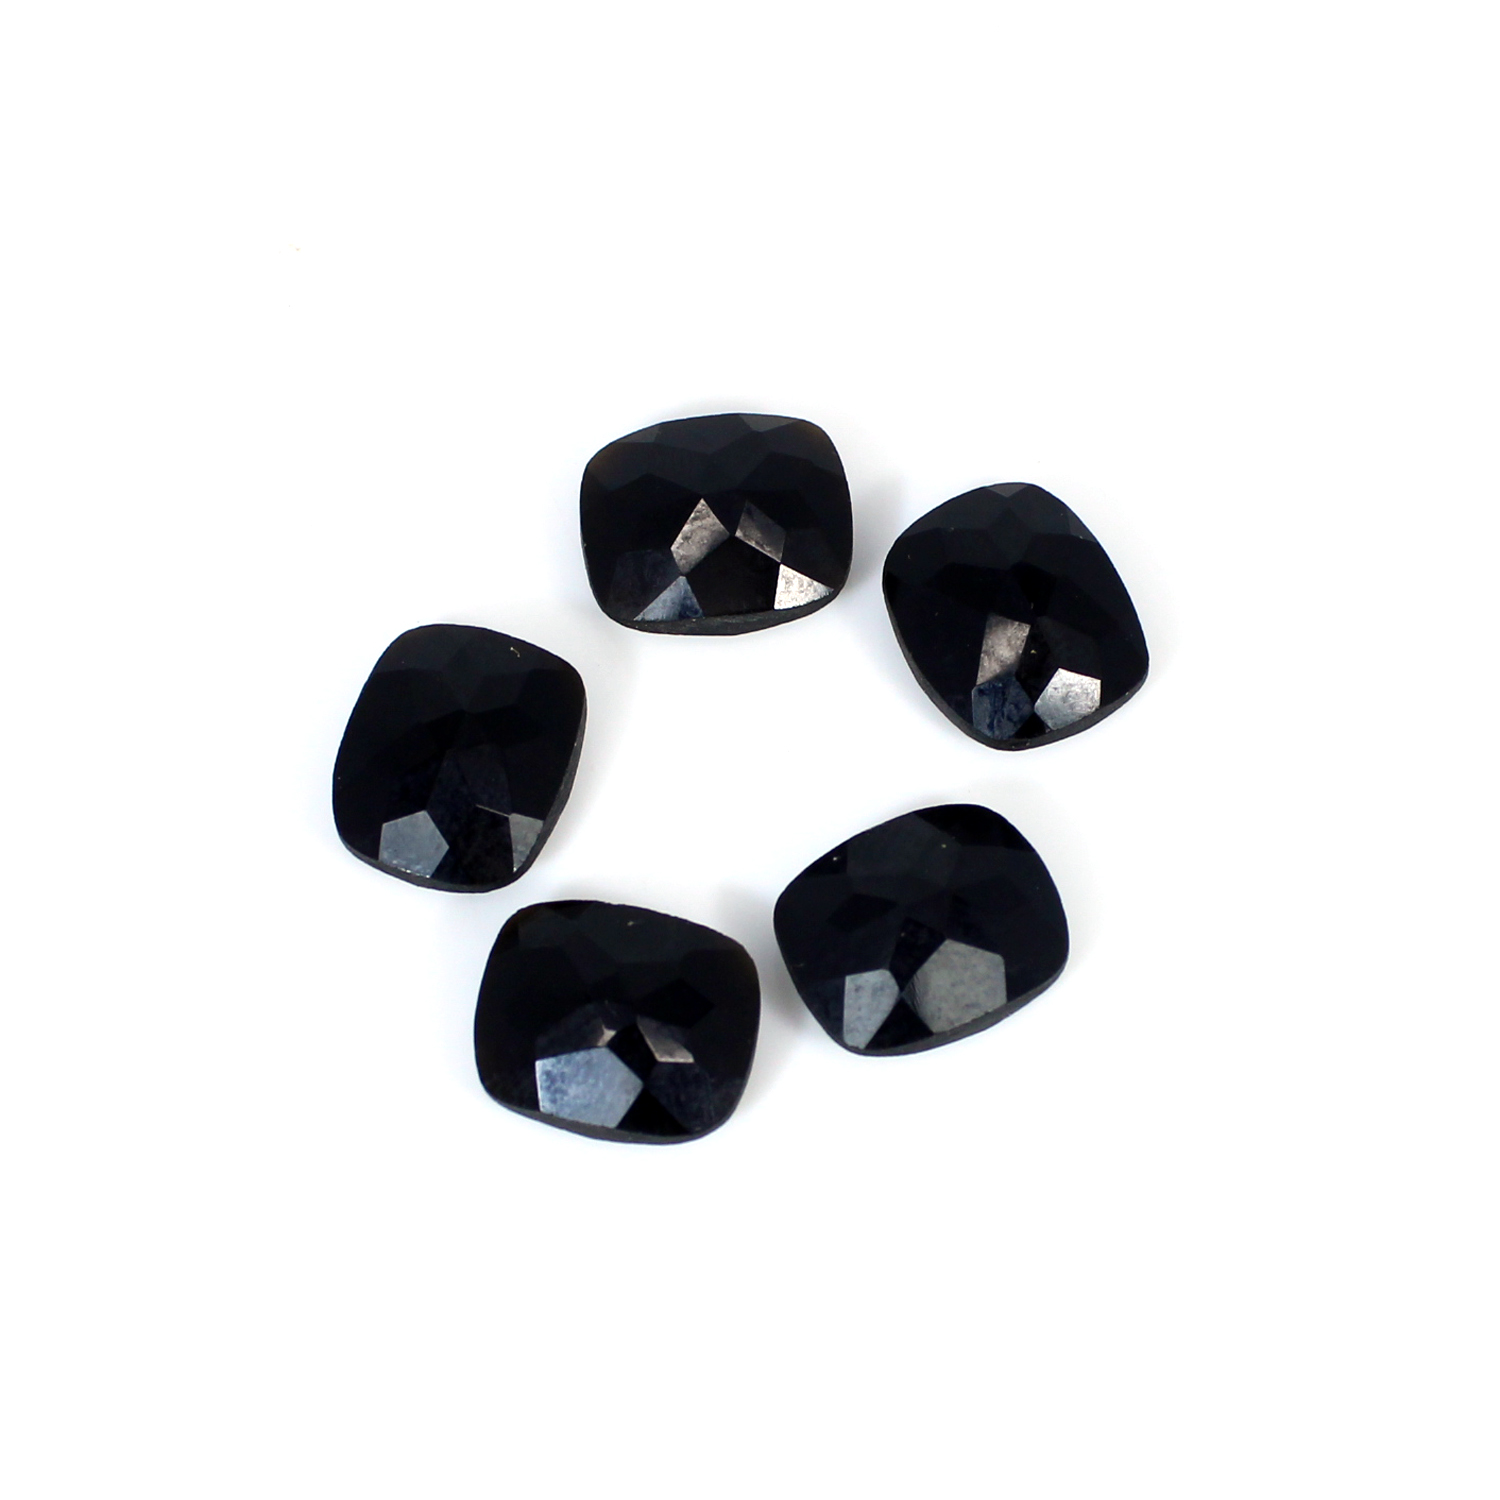 Christmas Offer Natural Black Onyx Cushion Checker Cut 12x10mm 23.4 Cts 5 Pcs Lot Loose Gemstone For Jewelry Making